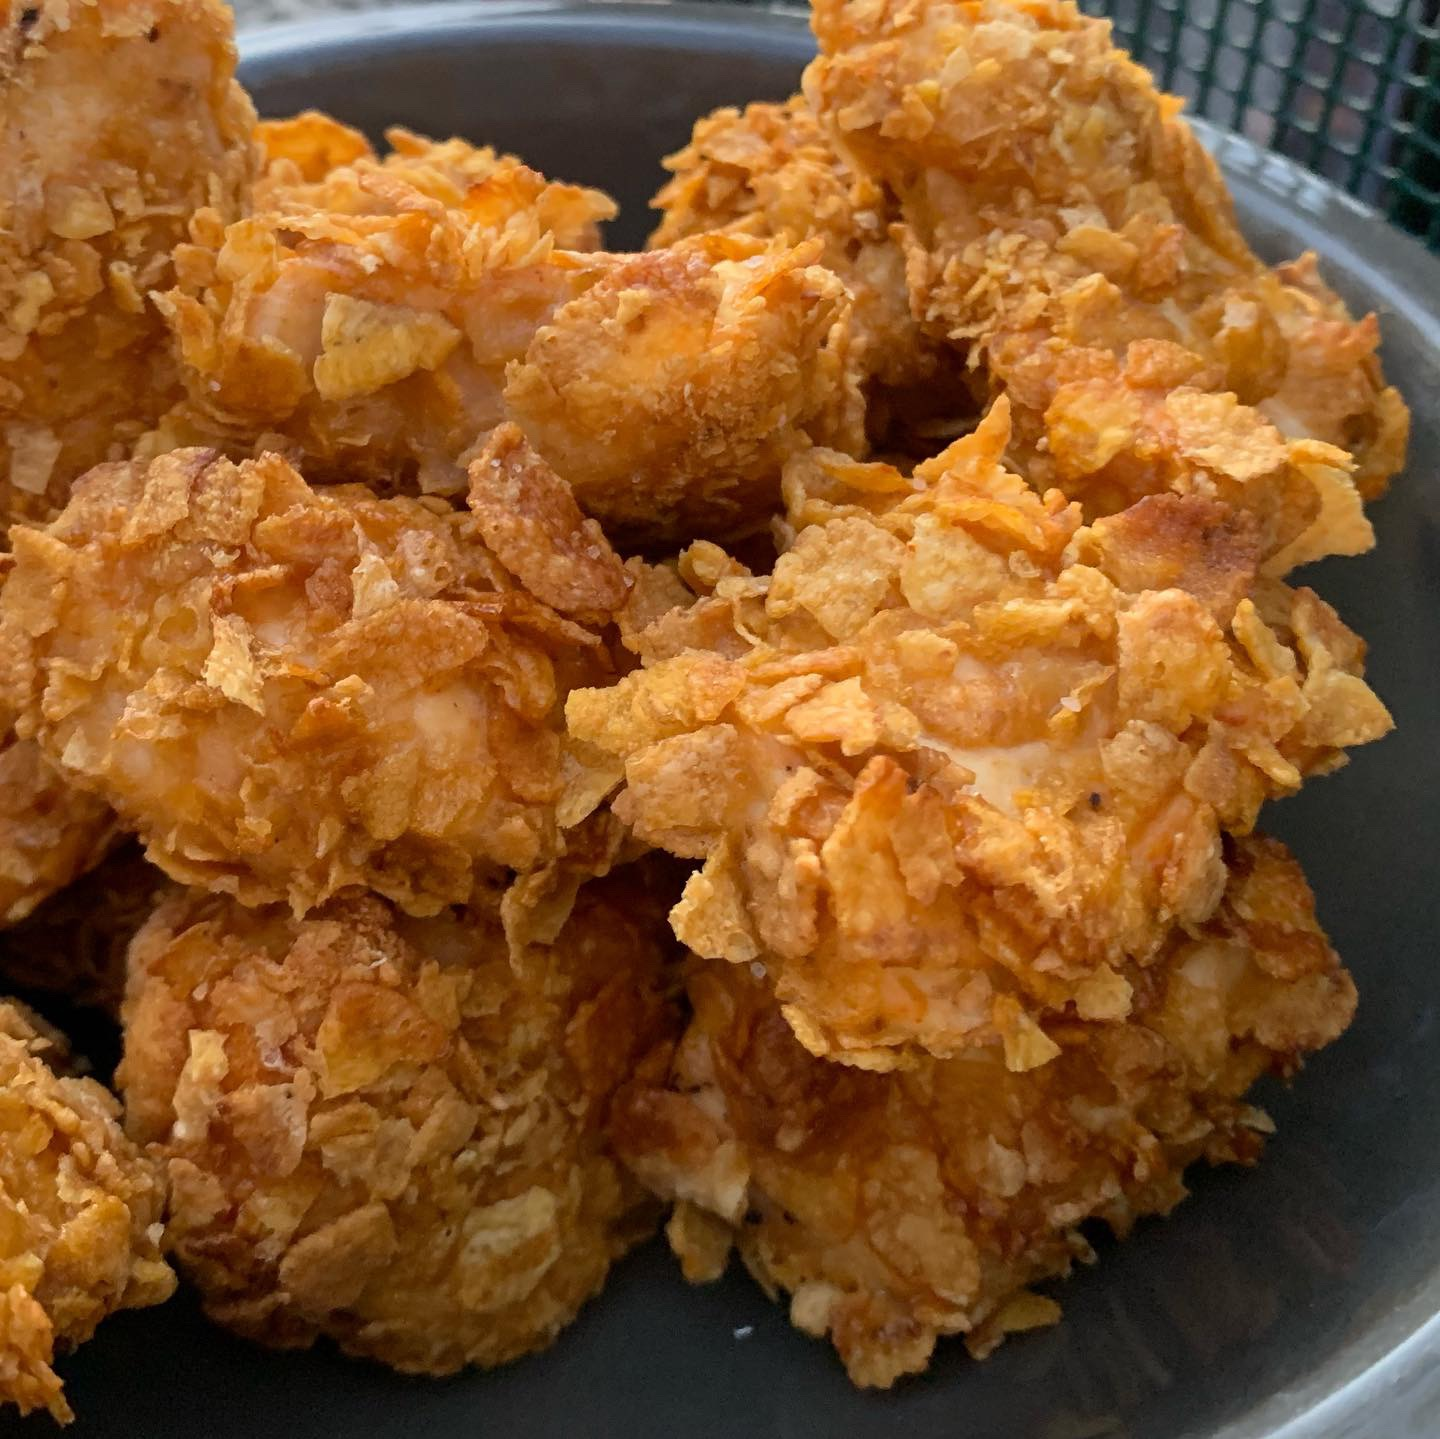 Nuggets de poulet ultra croustillants